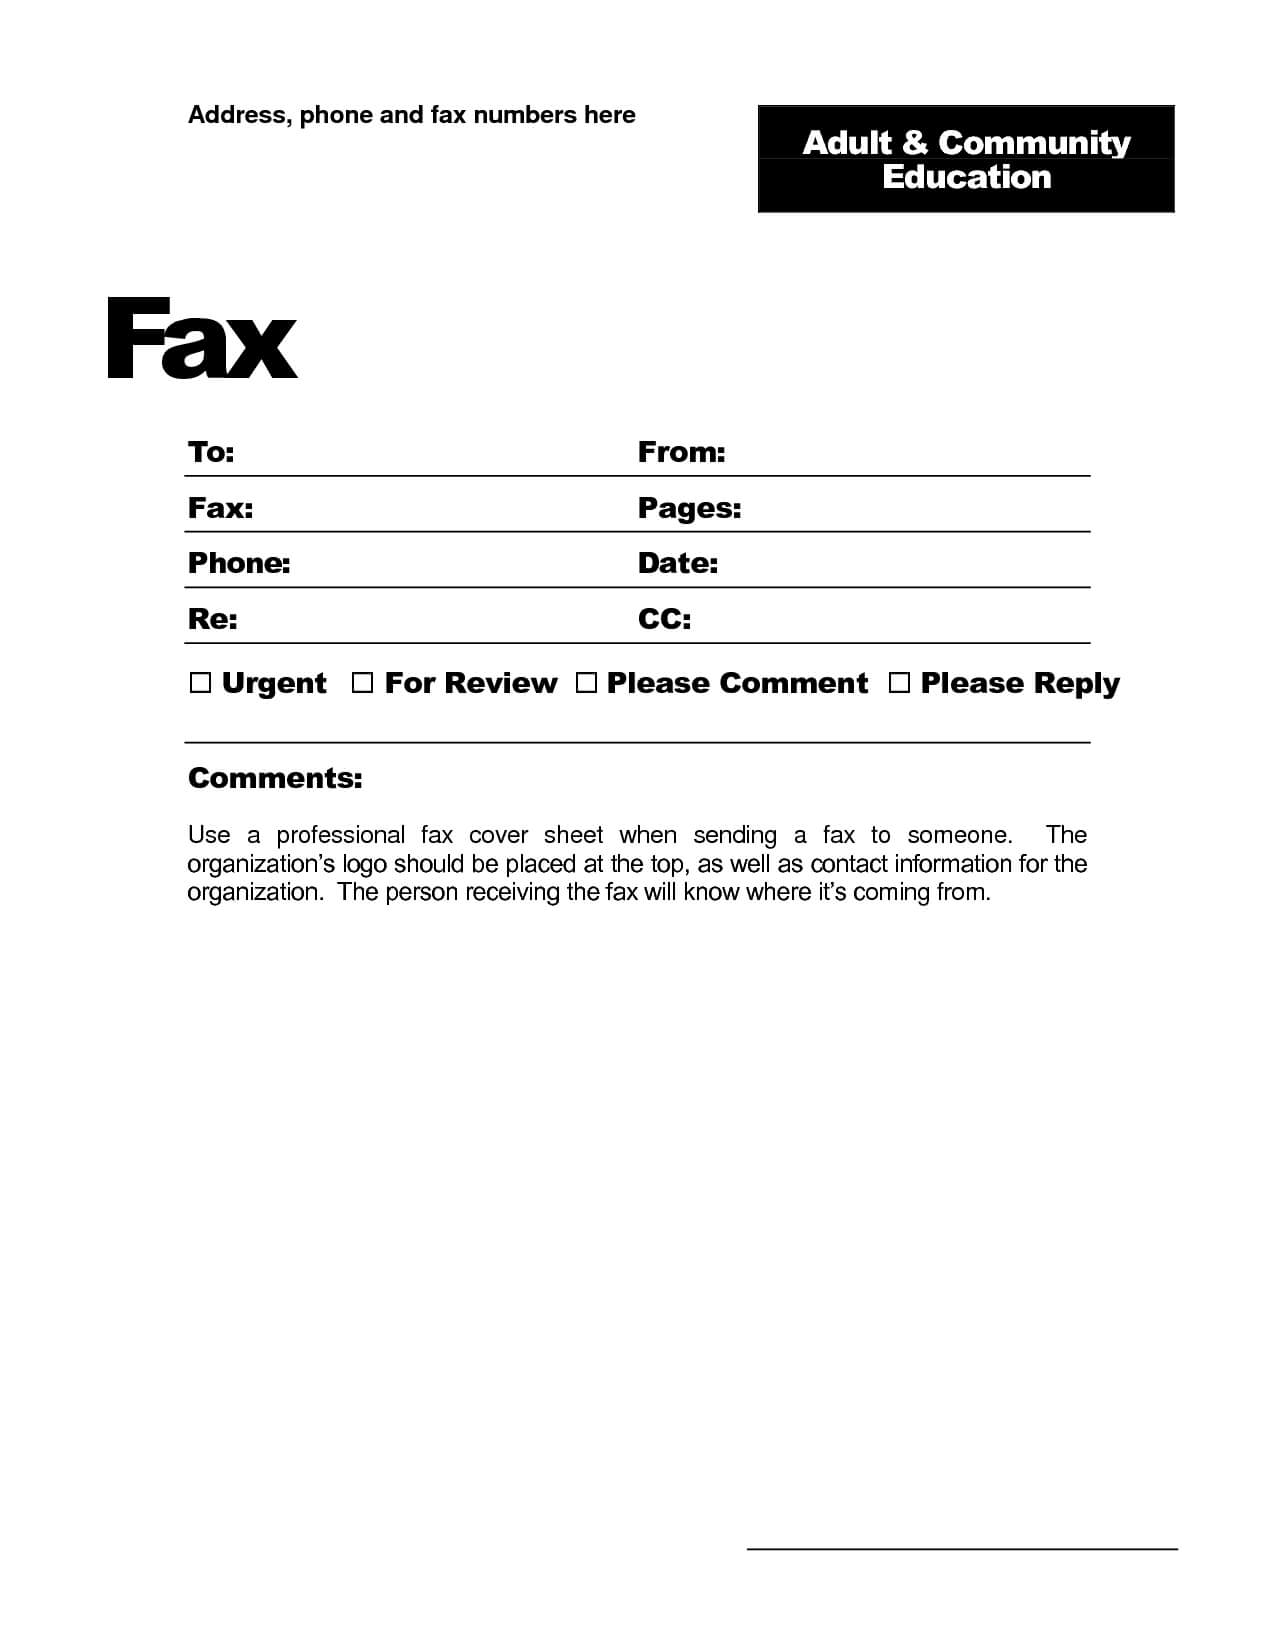 Fax Template Word 2010 - Free Download With Fax Template Word 2010